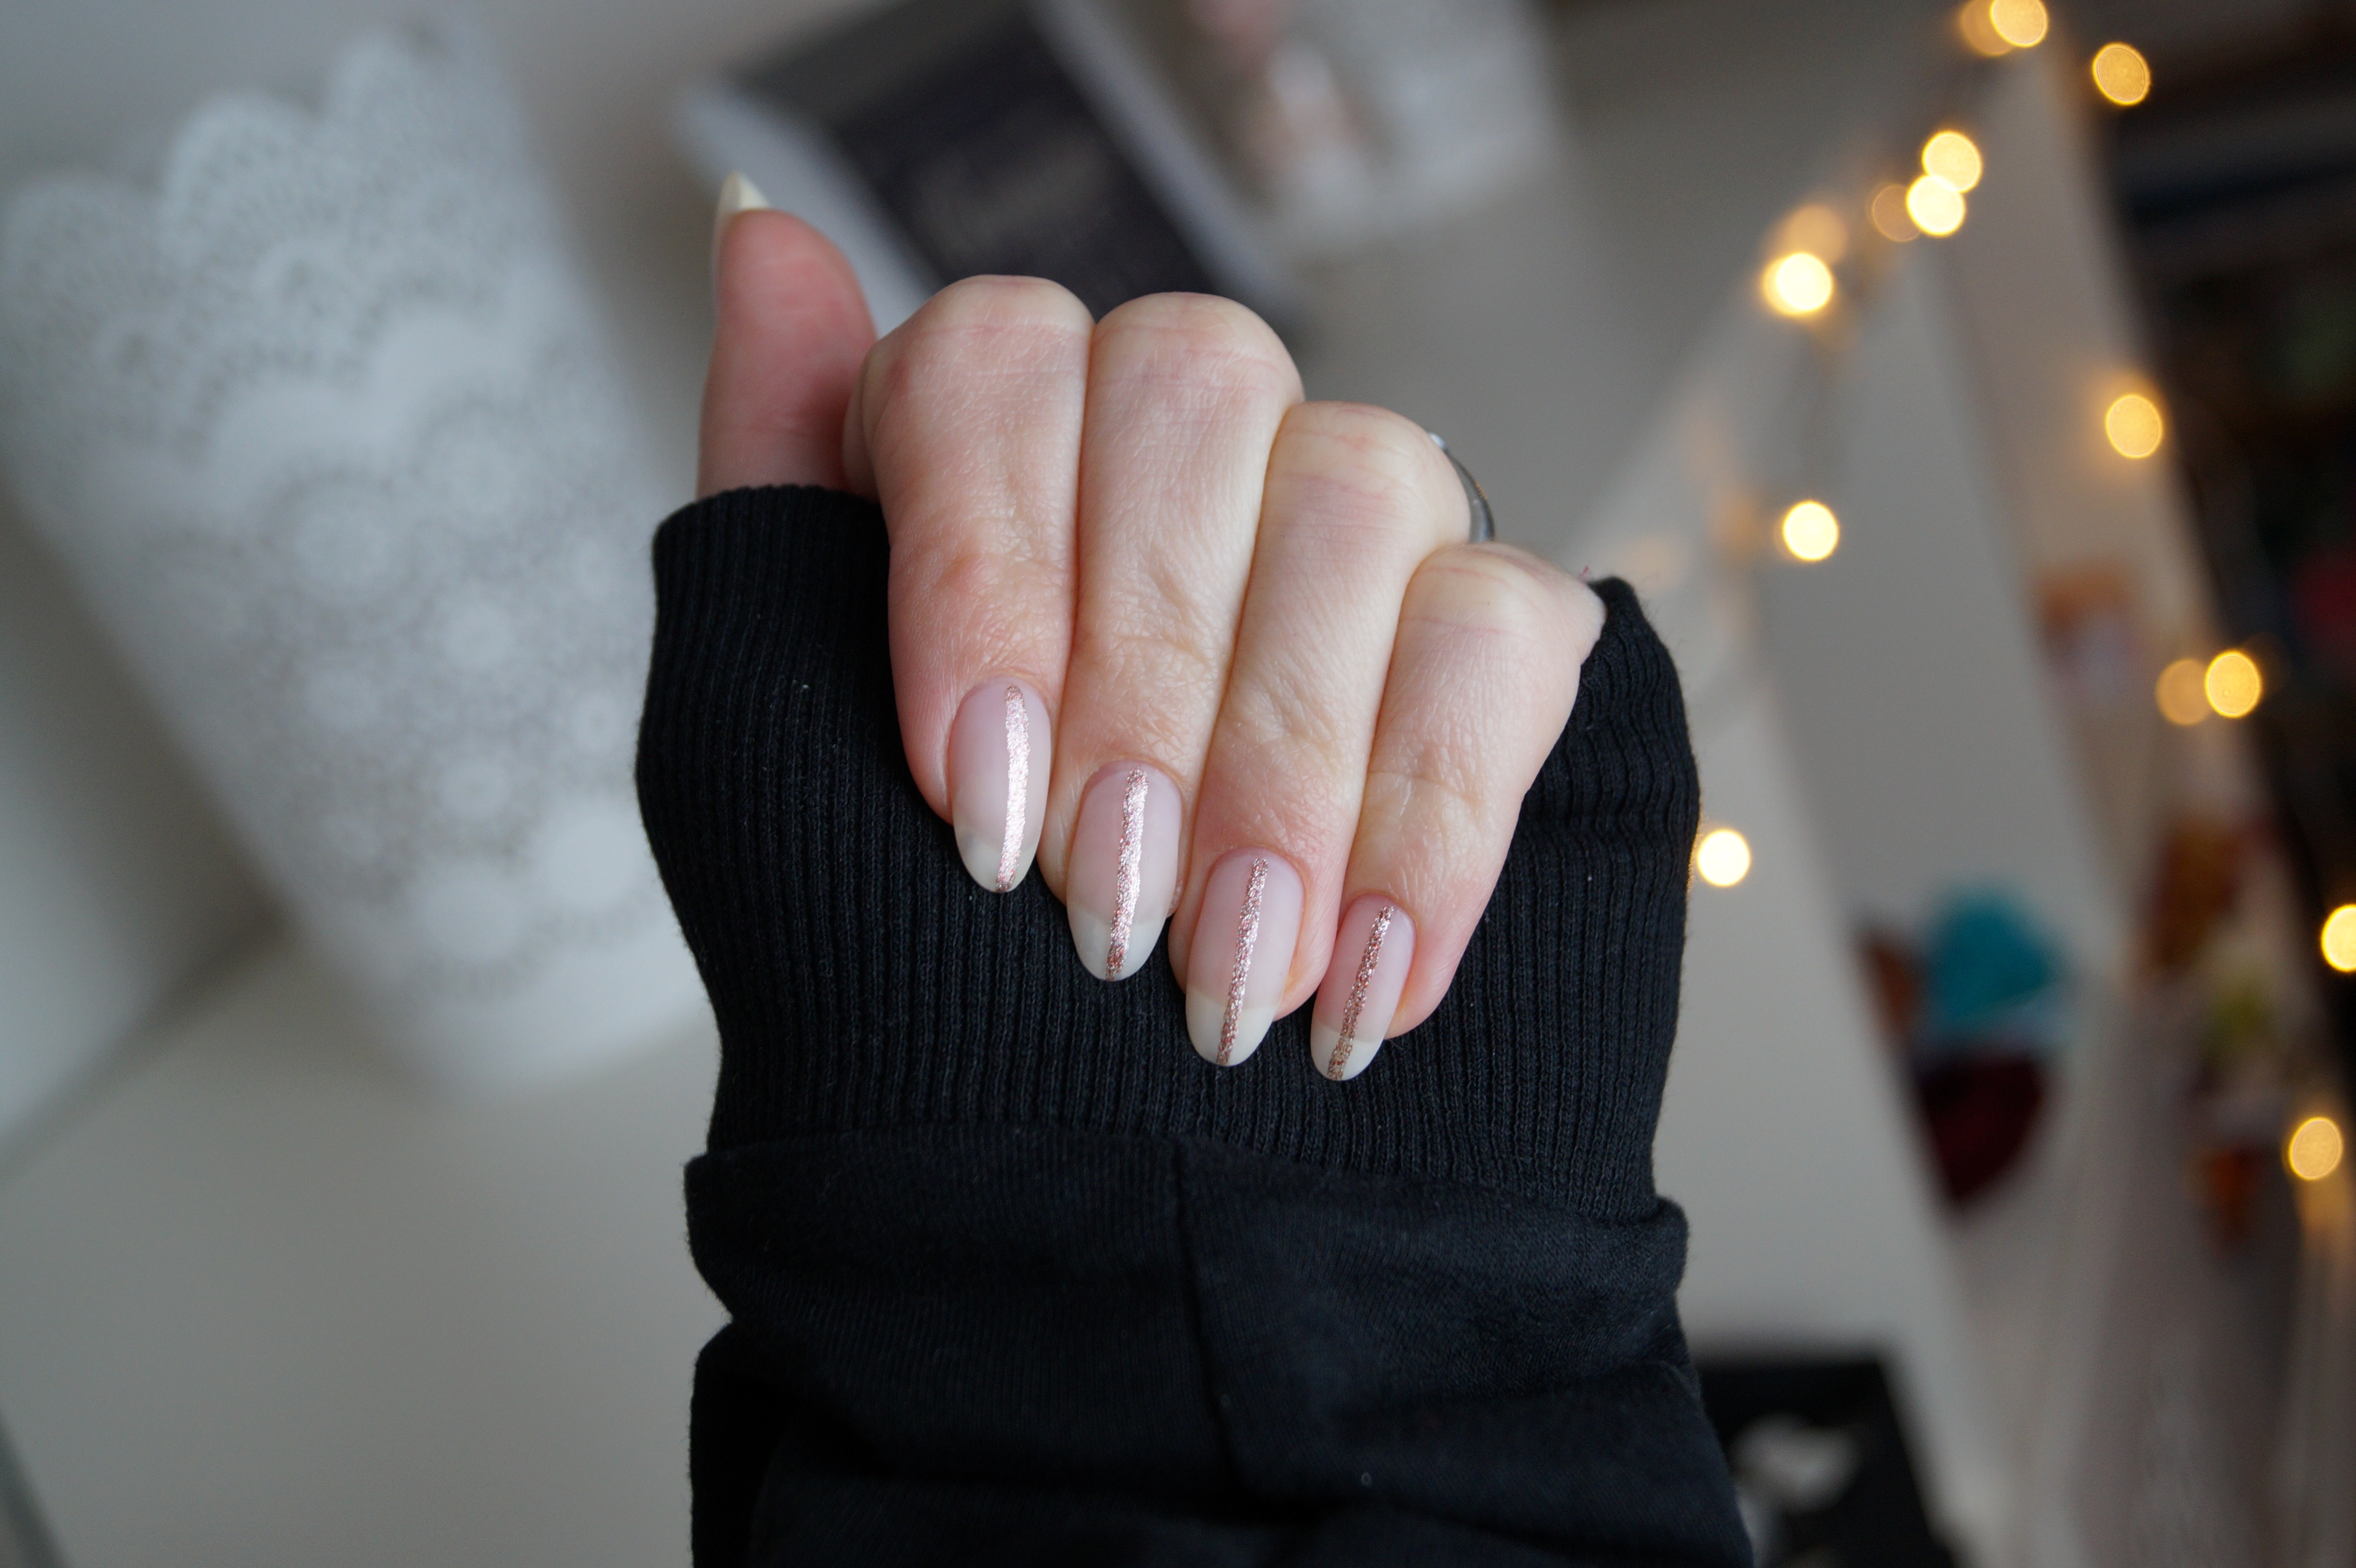 There's always a silver lining #Nailart